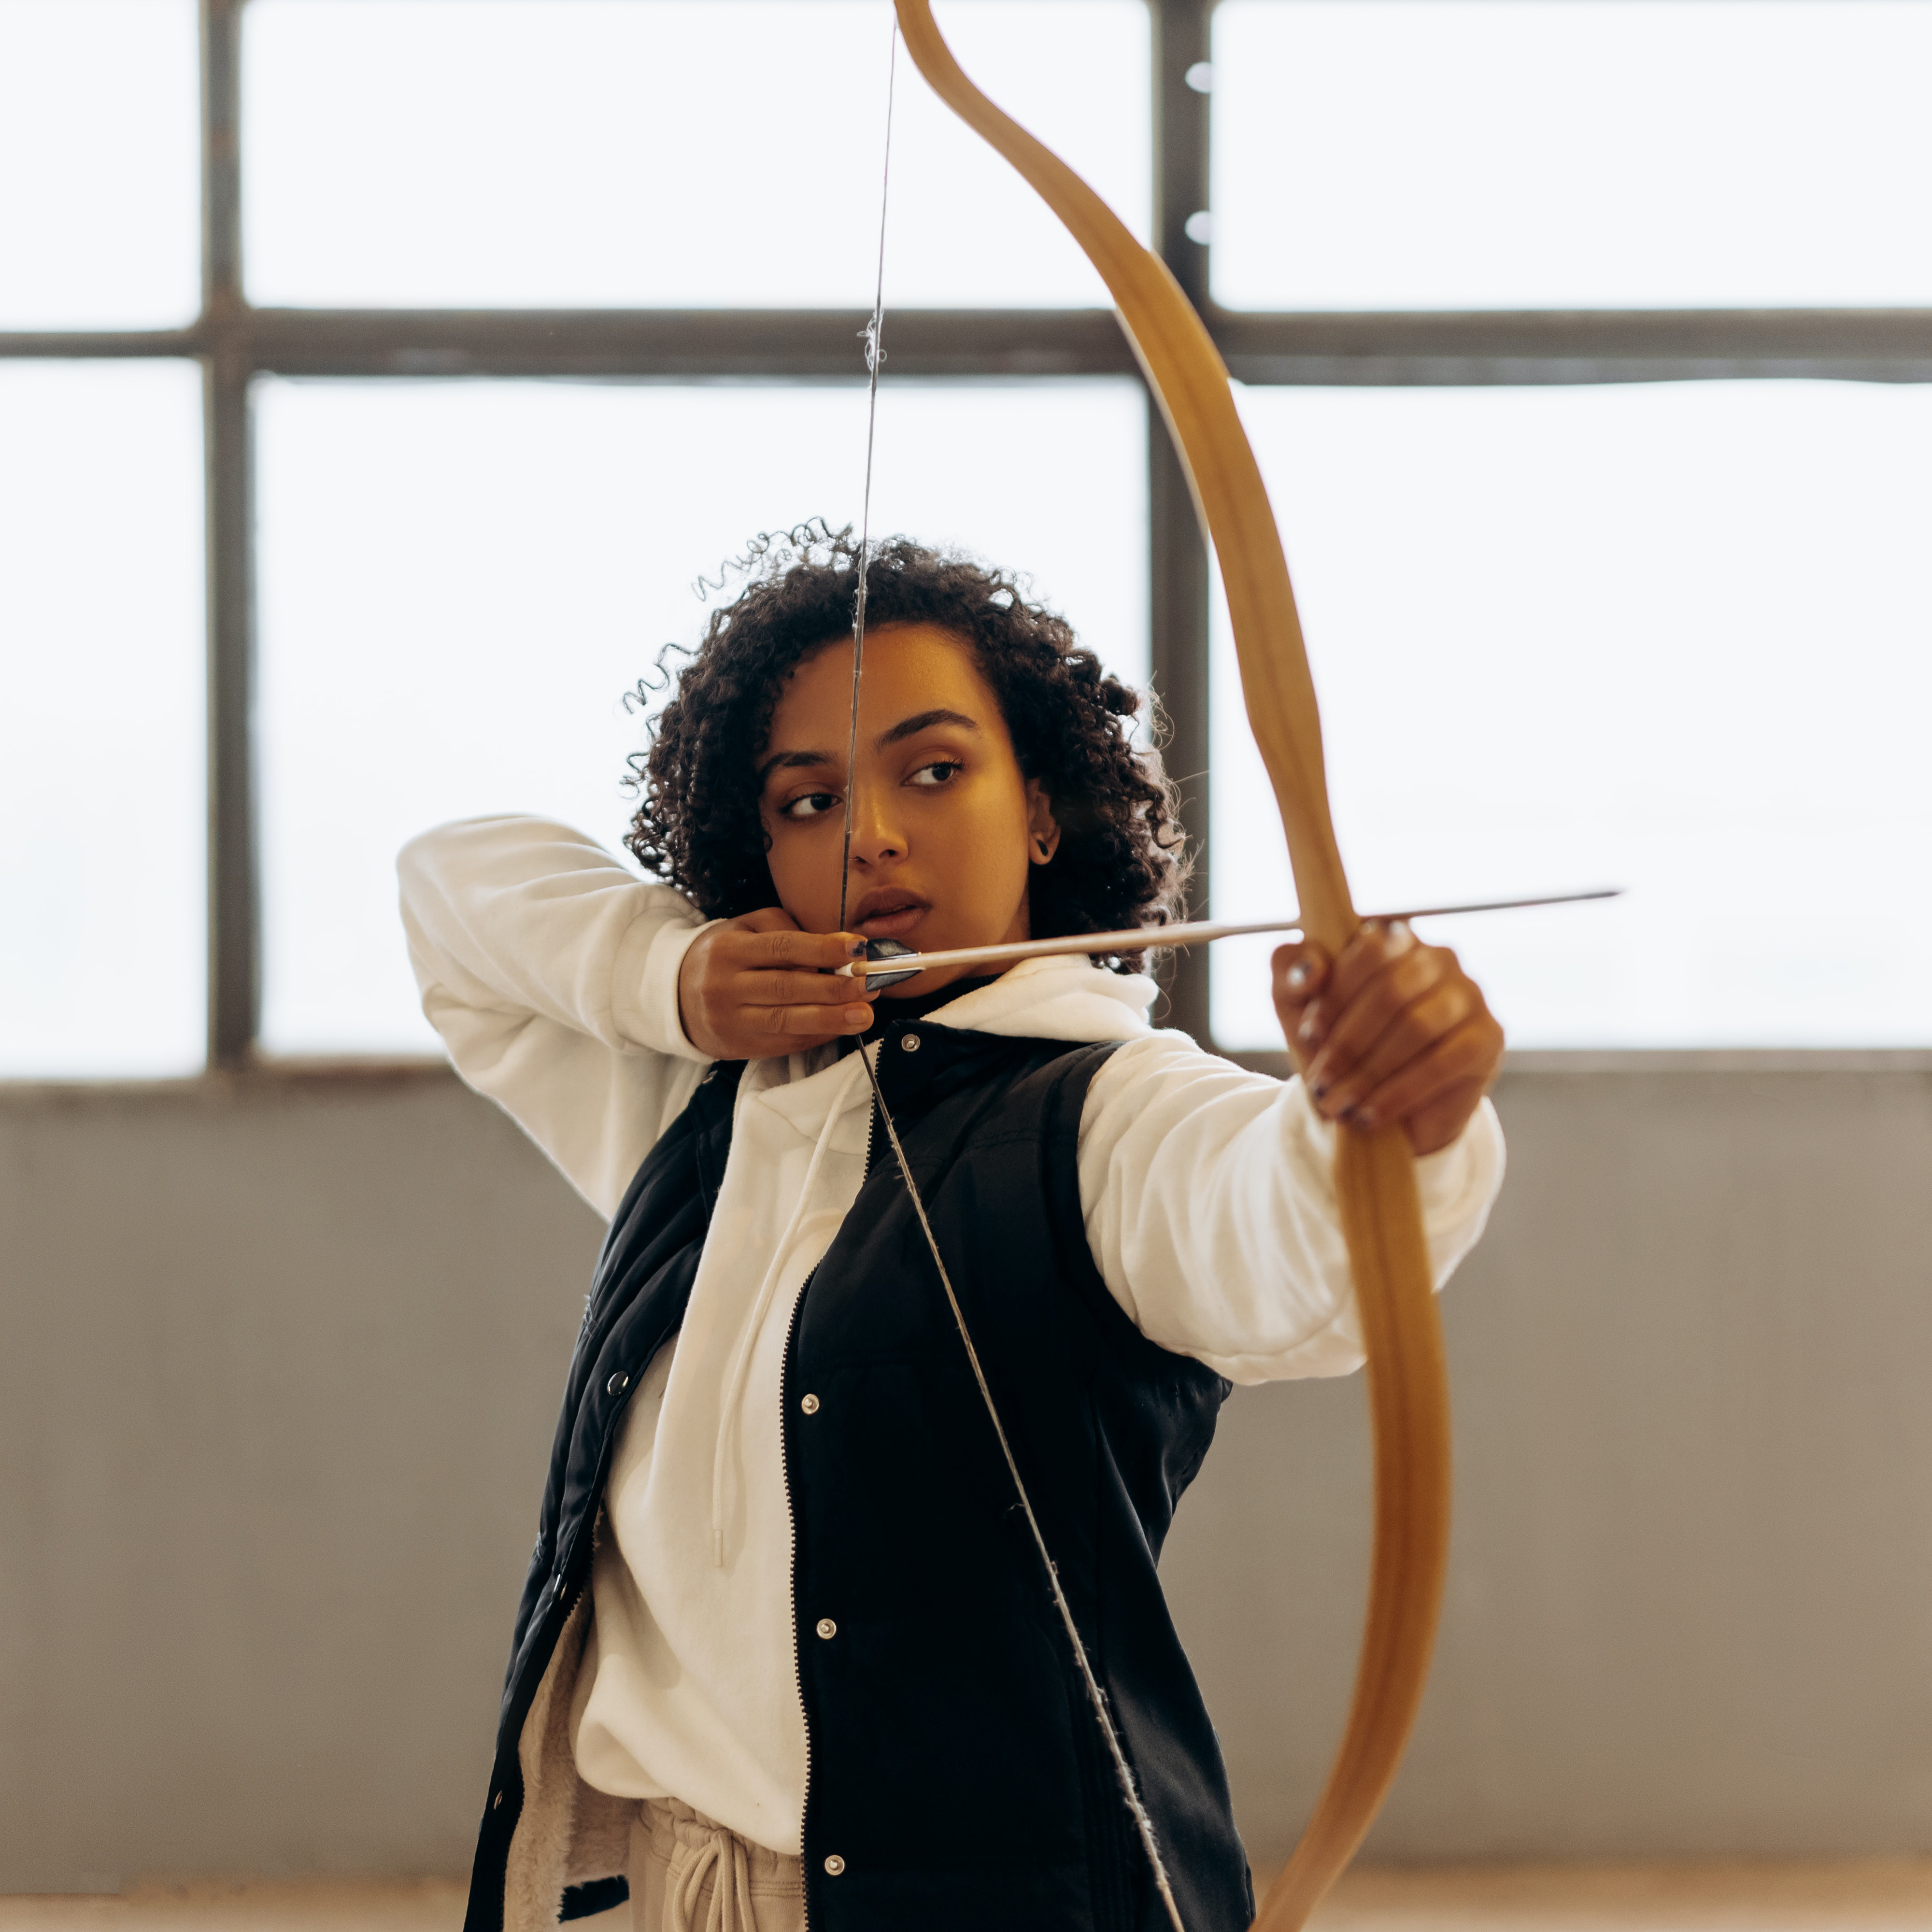 A student drawing their bow and arrow